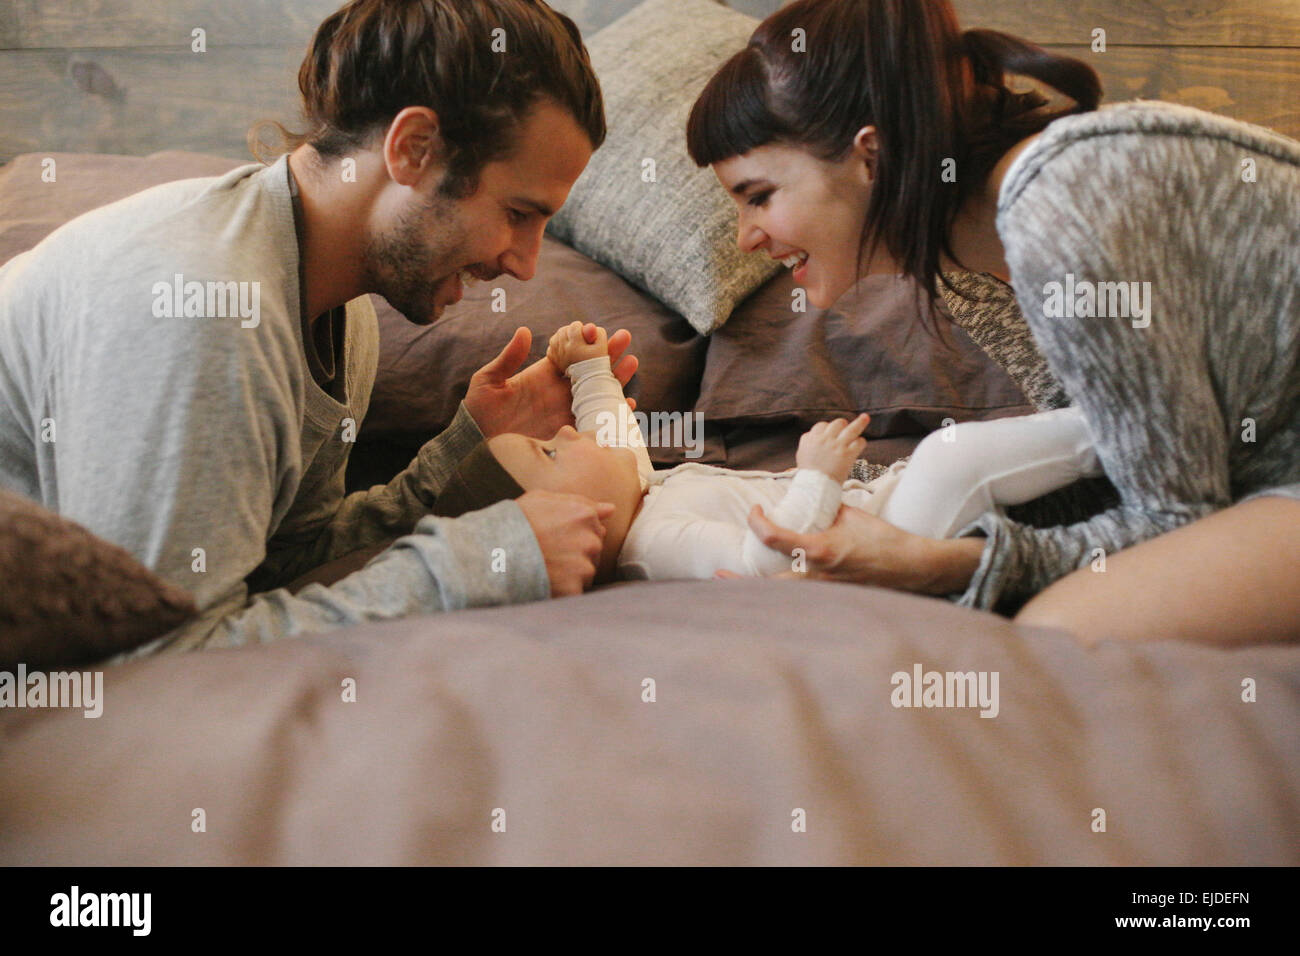 A mother, father and young baby together at home. - Stock Image